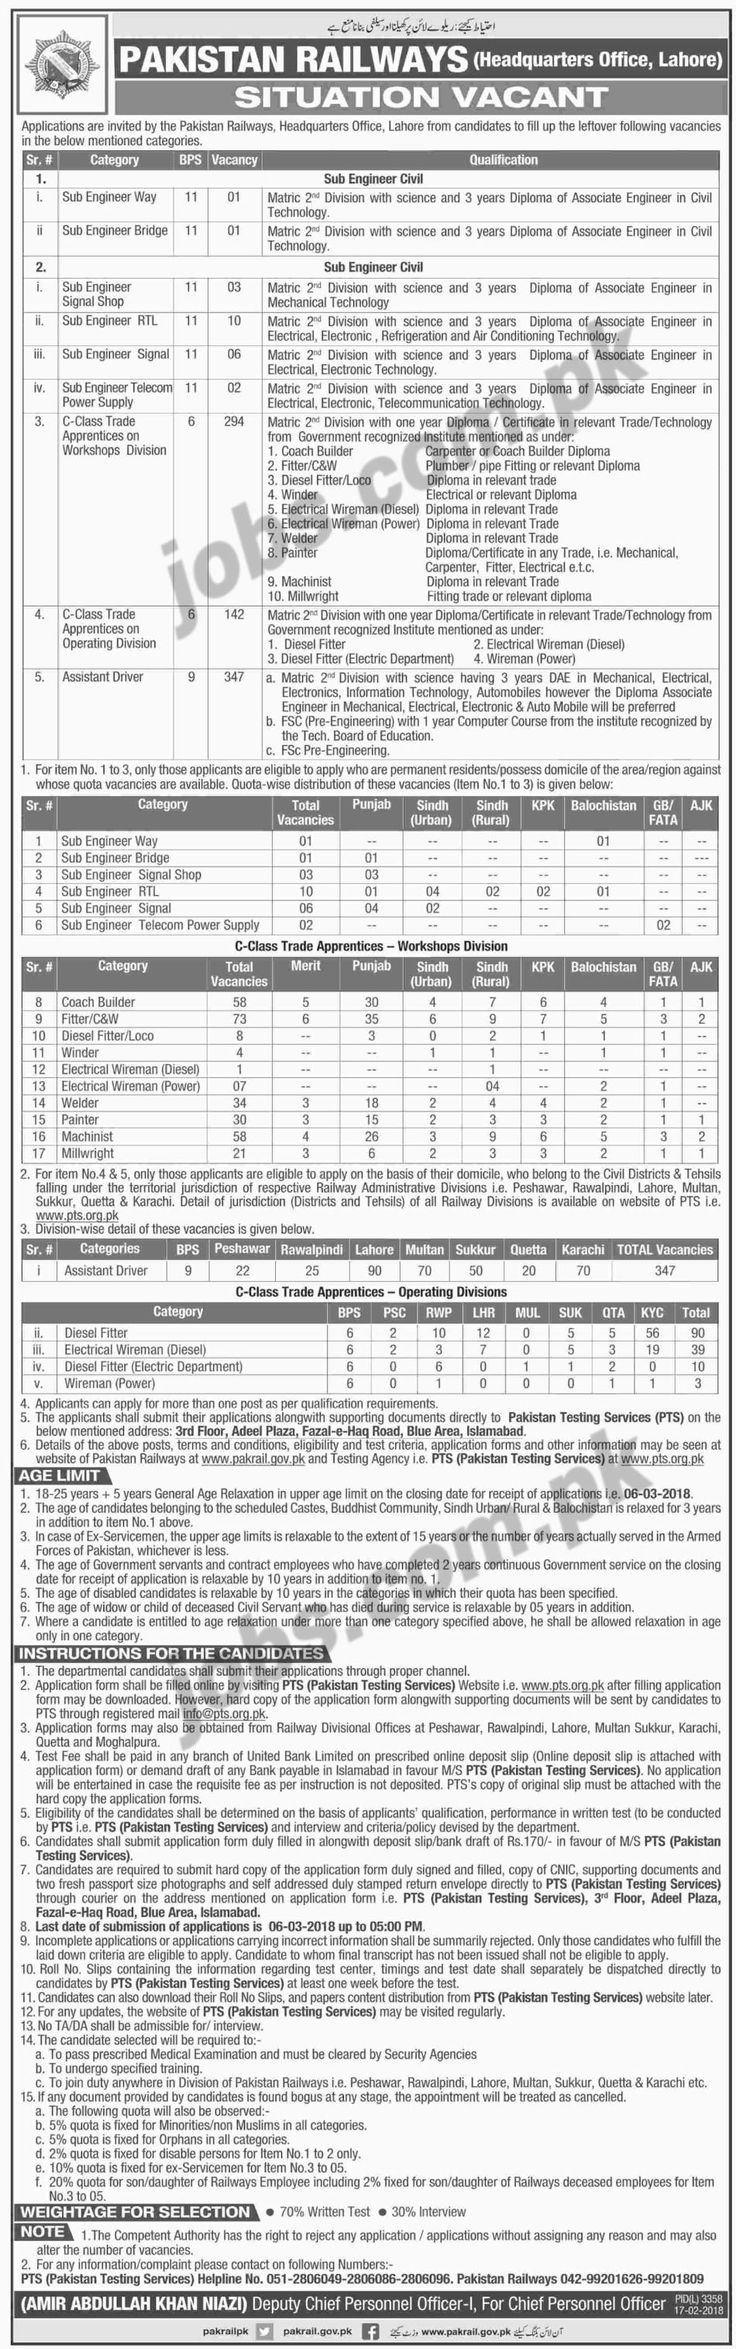 Pakistan Railways Jobs 2018 for 806+ Sub-Engineers, DAE, C-Class Trade Apprentices & Assistant Drivers (Download PTS Form) (Job id 33139) | Jobs in Pakistan